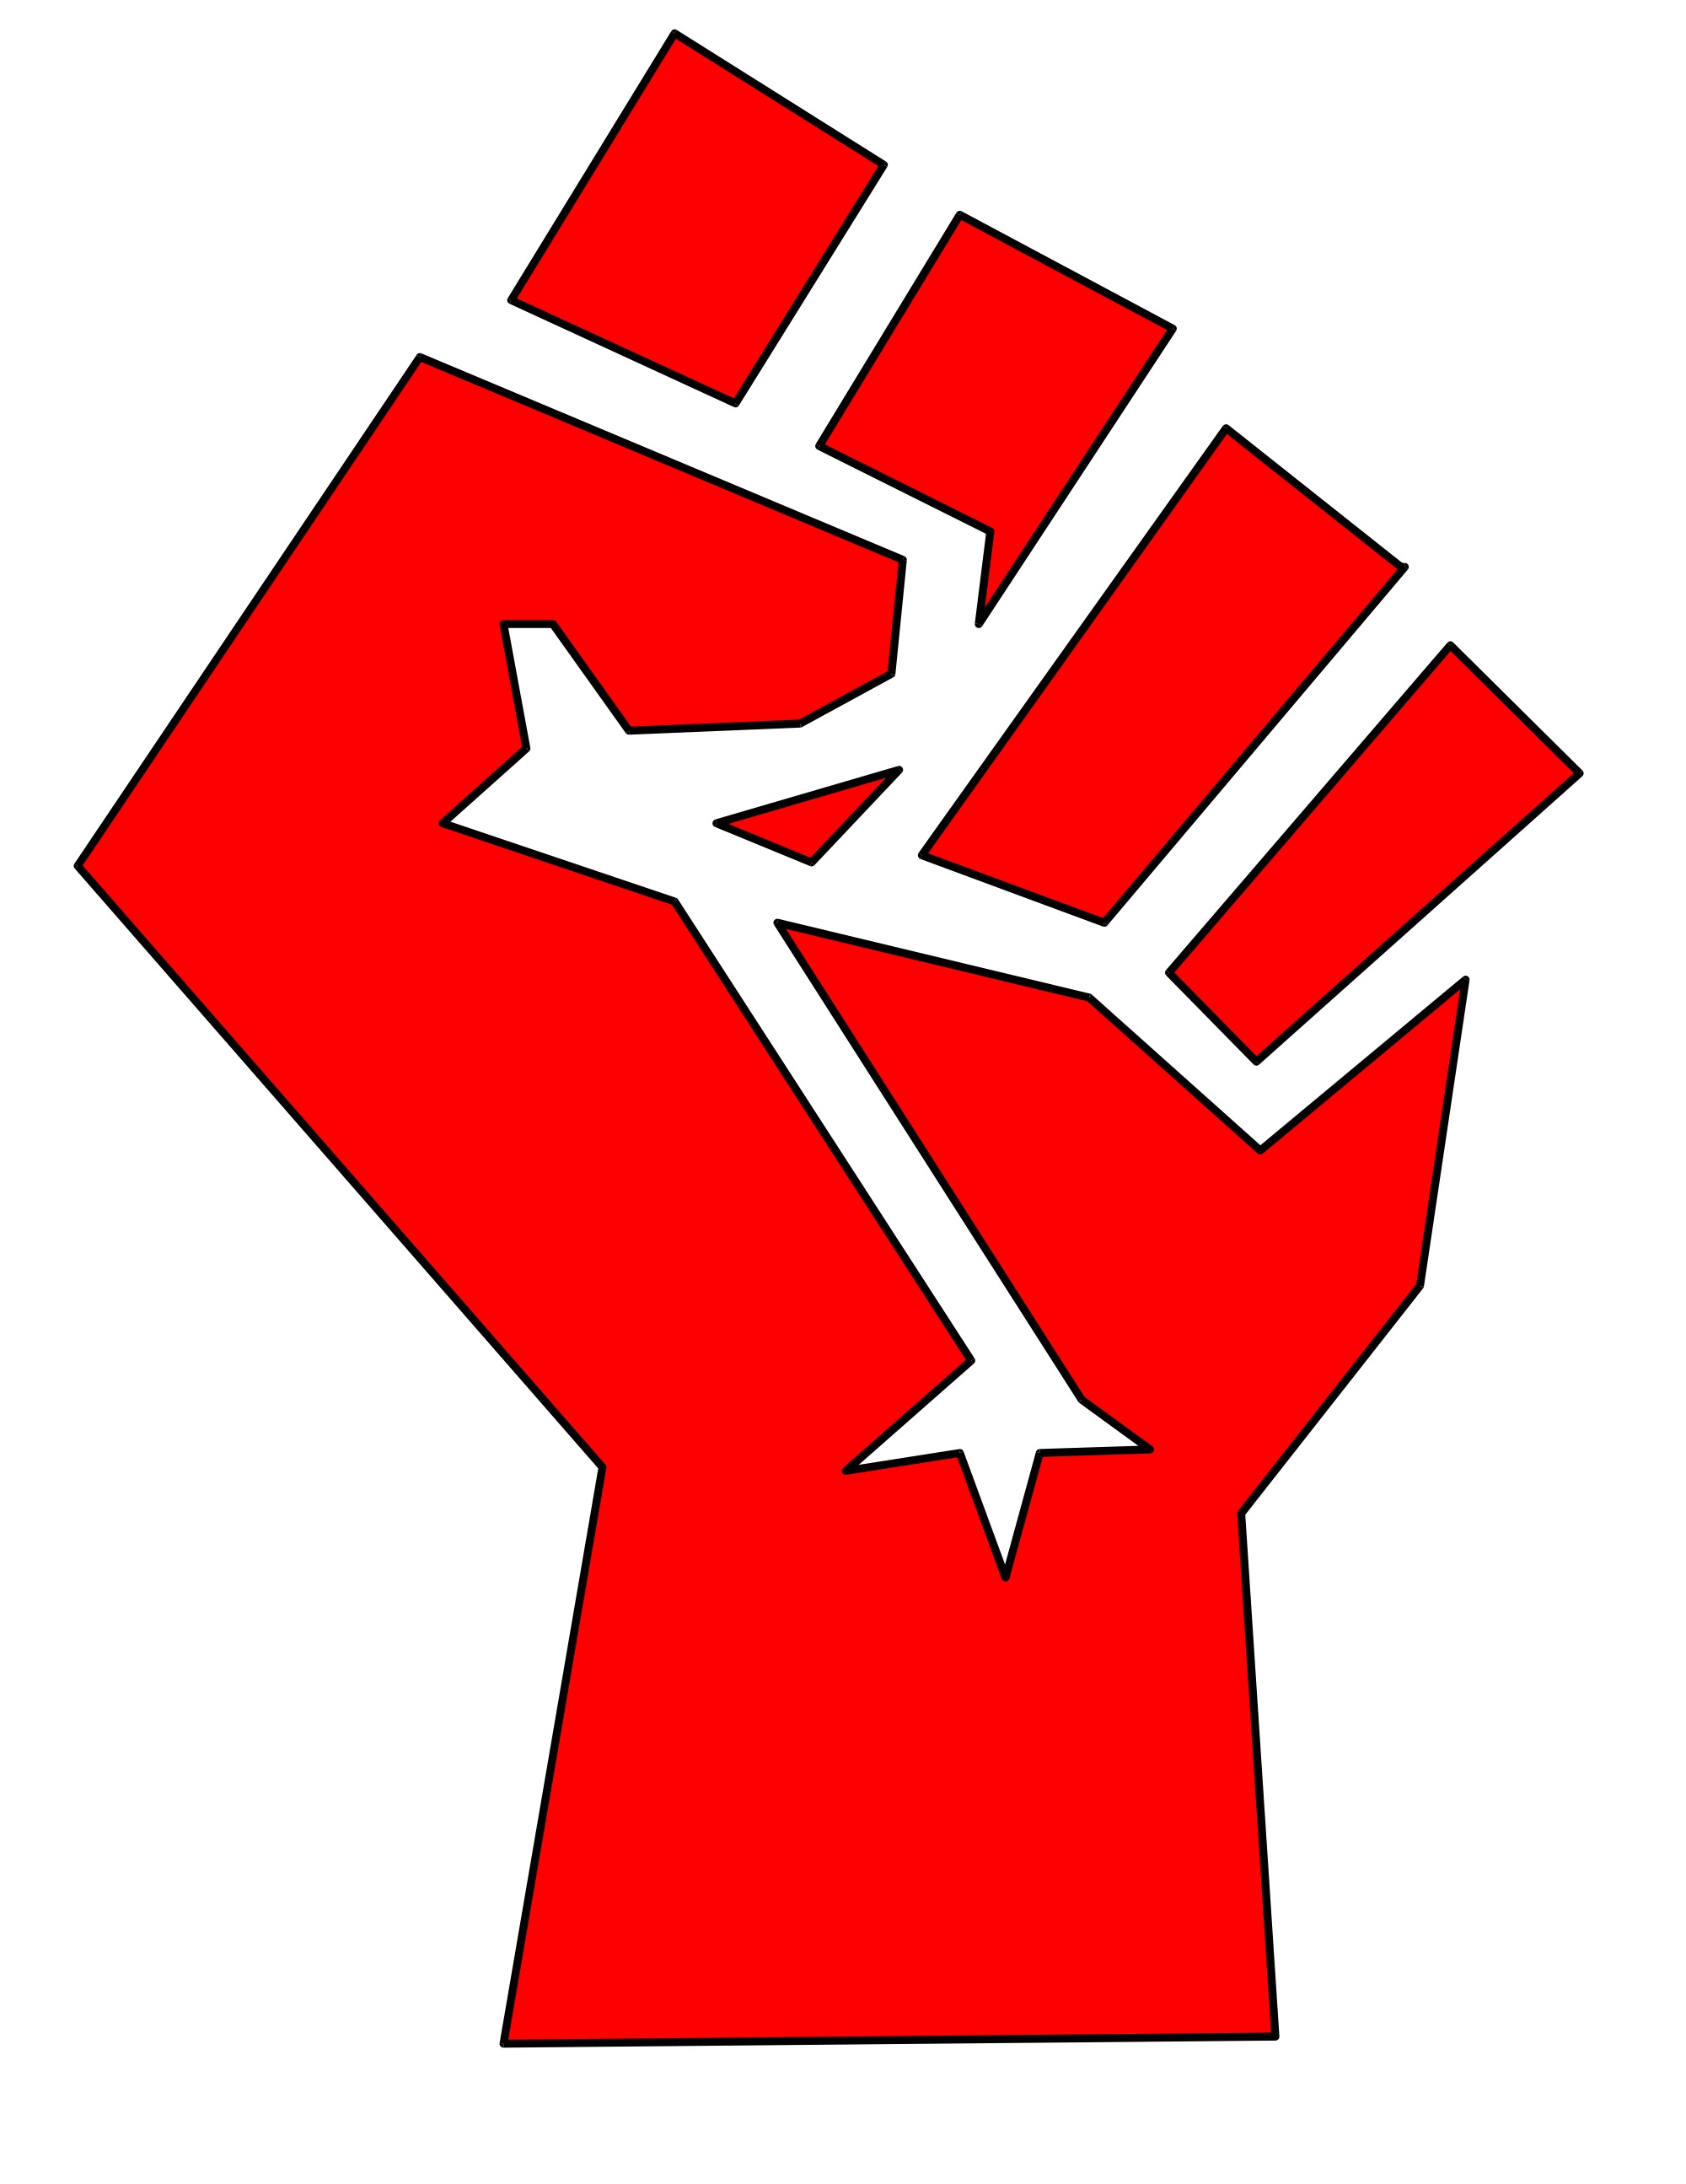 Economics clipart socialist economy. Fist red pencil and